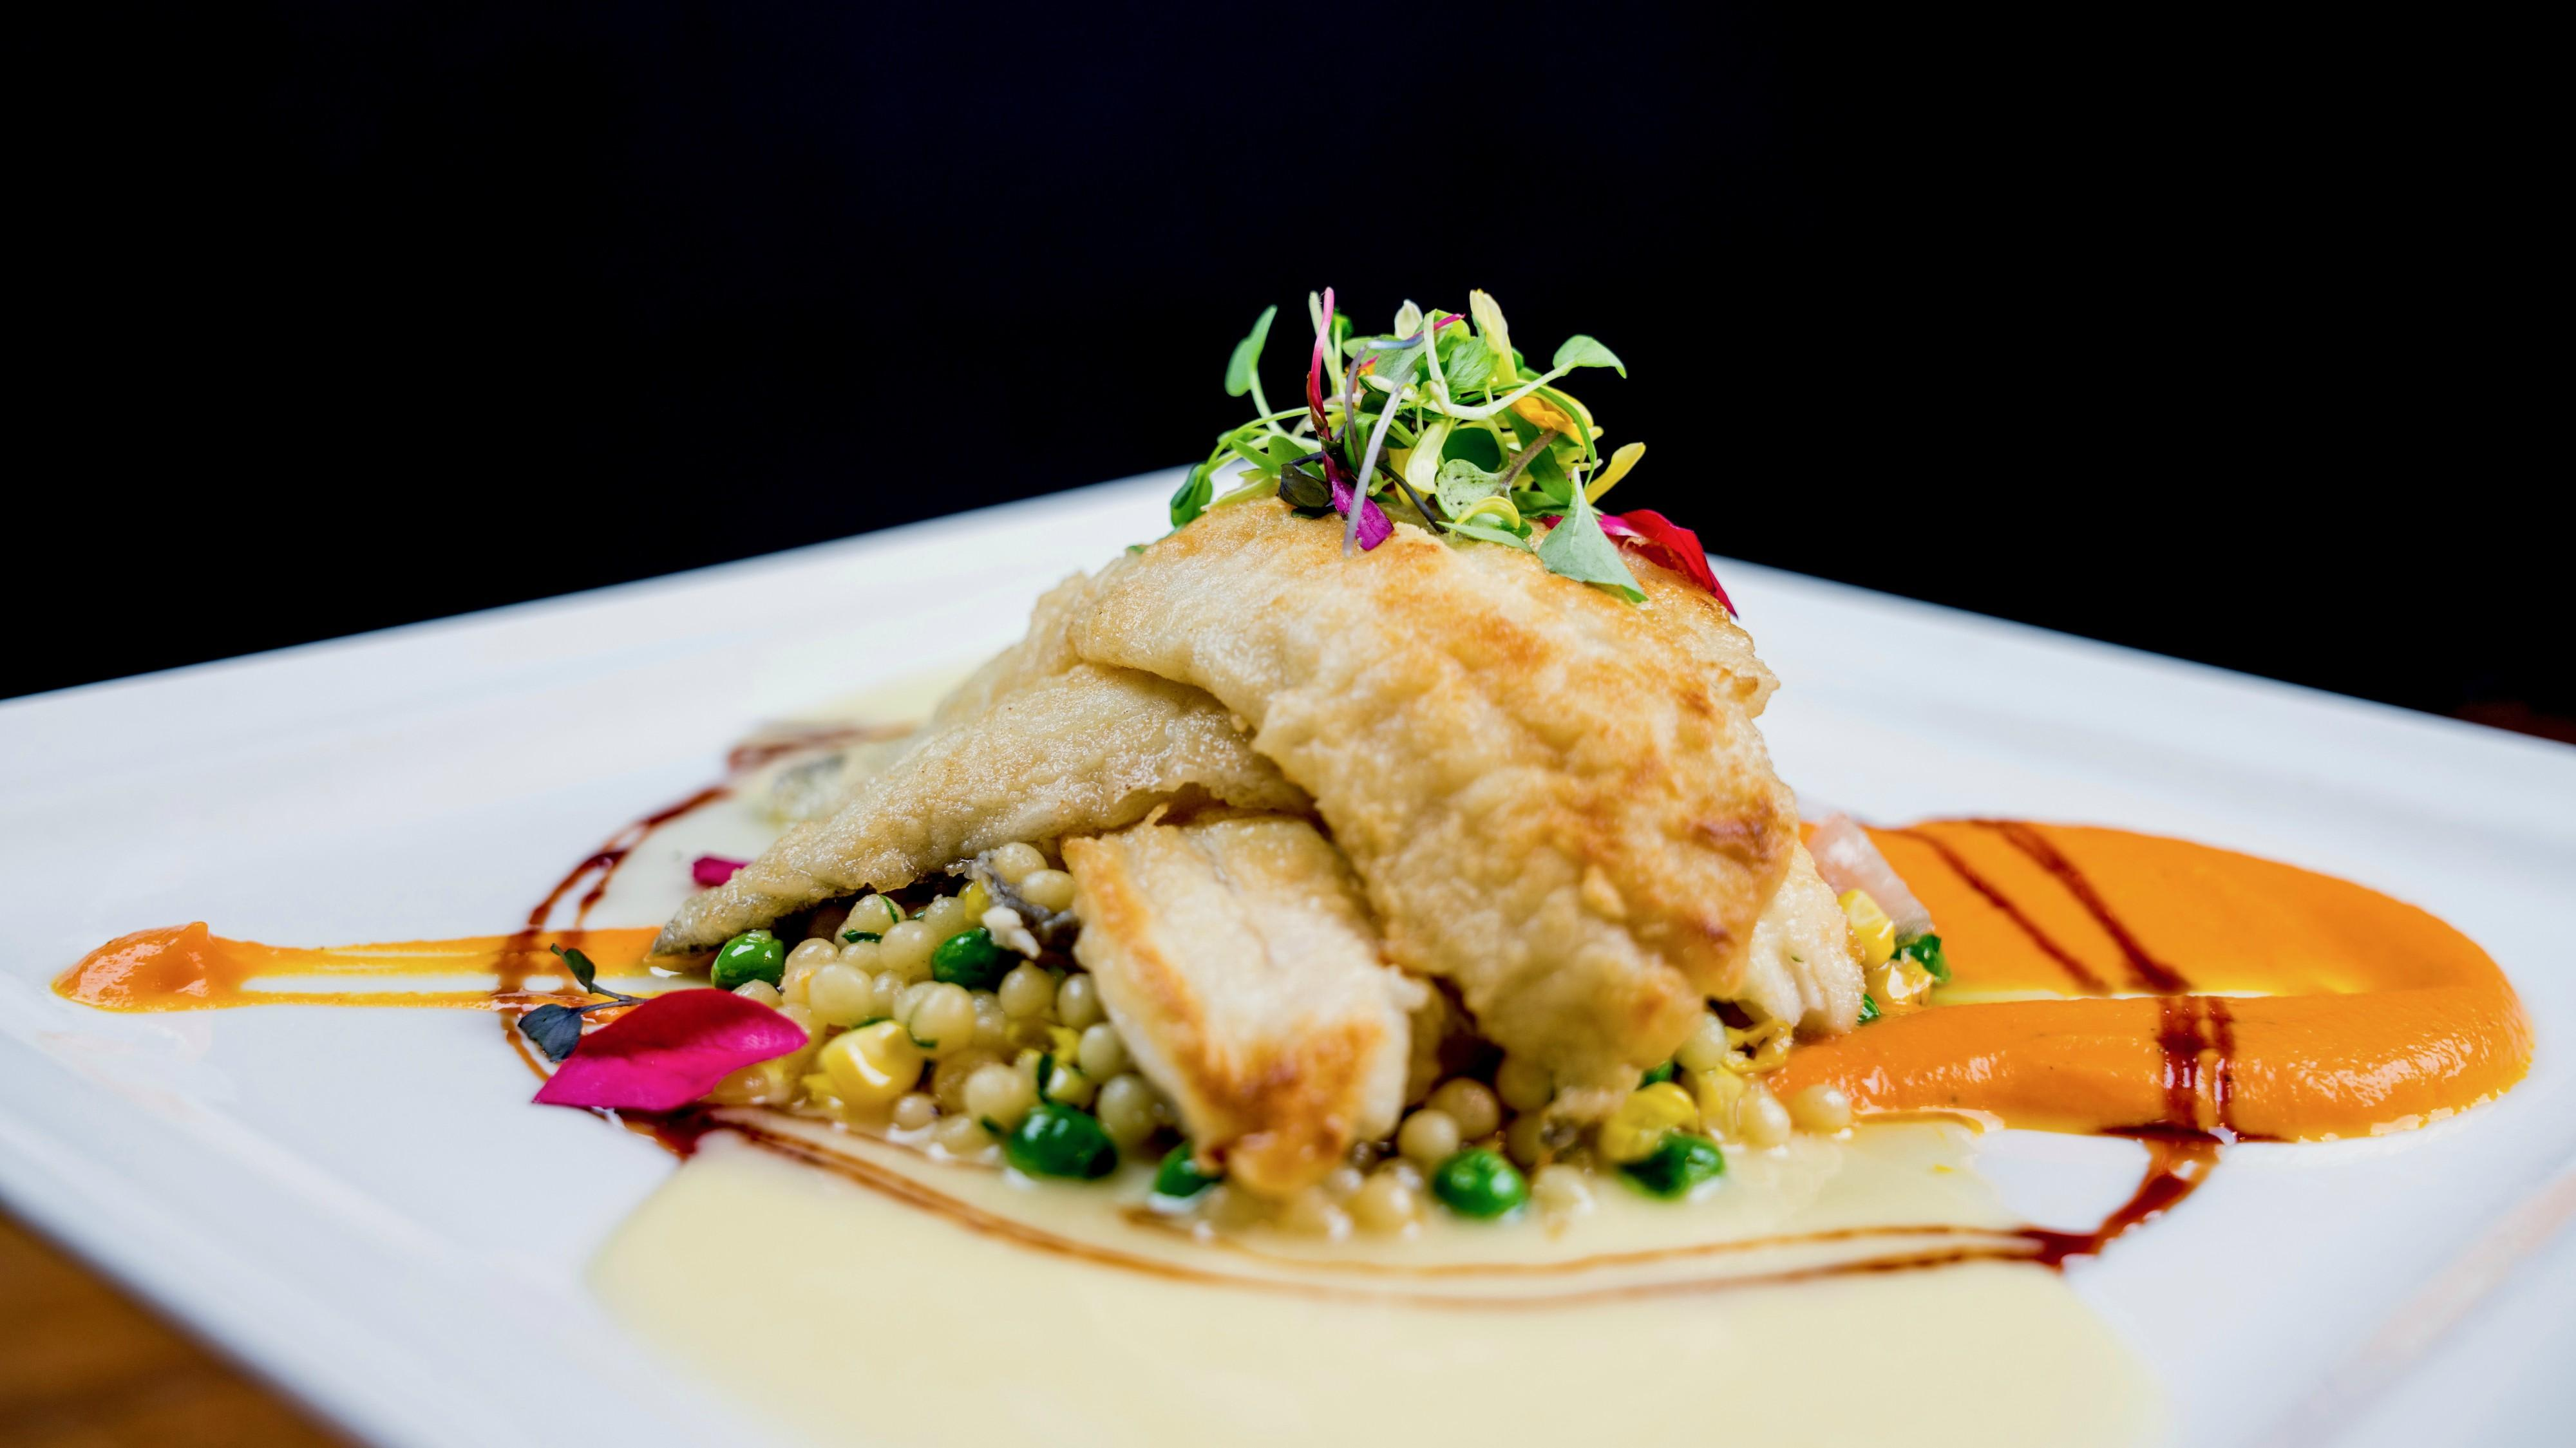 Sautéed Pacific Coast Sand Dabs Pearled cous cous with fresh peas and charred local corn, heirloom carrot puree, pomegranate gastrique, sauvignon blanc citrus butter at Tonto Bar & Grill